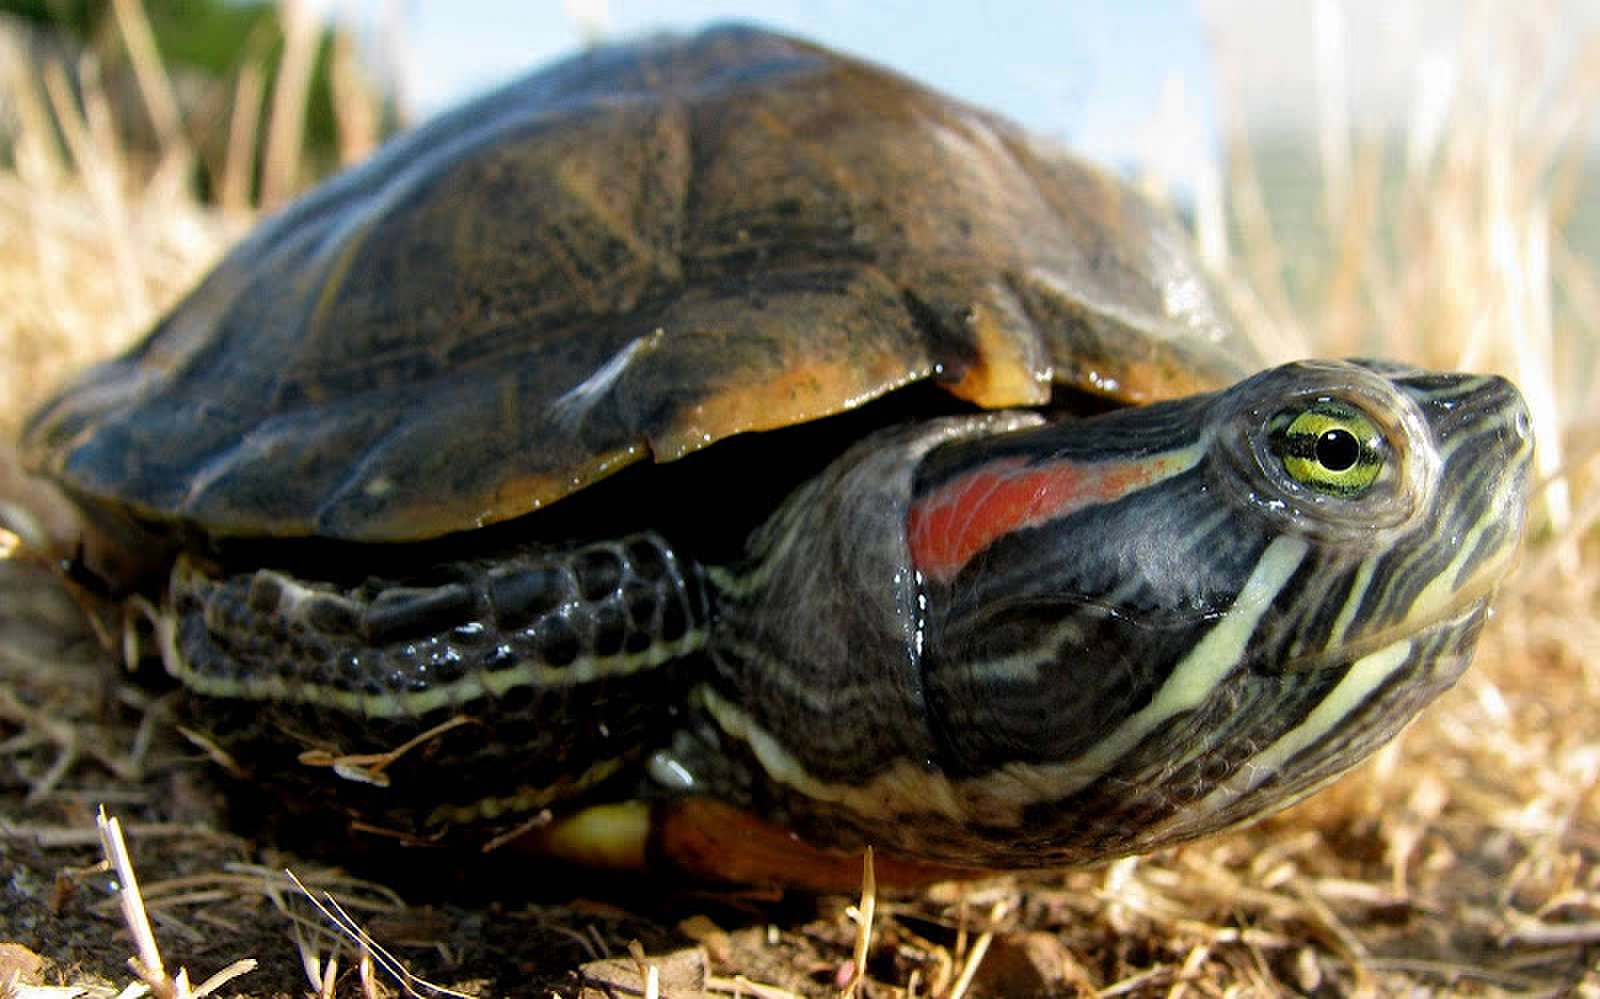 Turtles+As+Pets Why Do Turtles Sold as Pets Have a Size Limit?